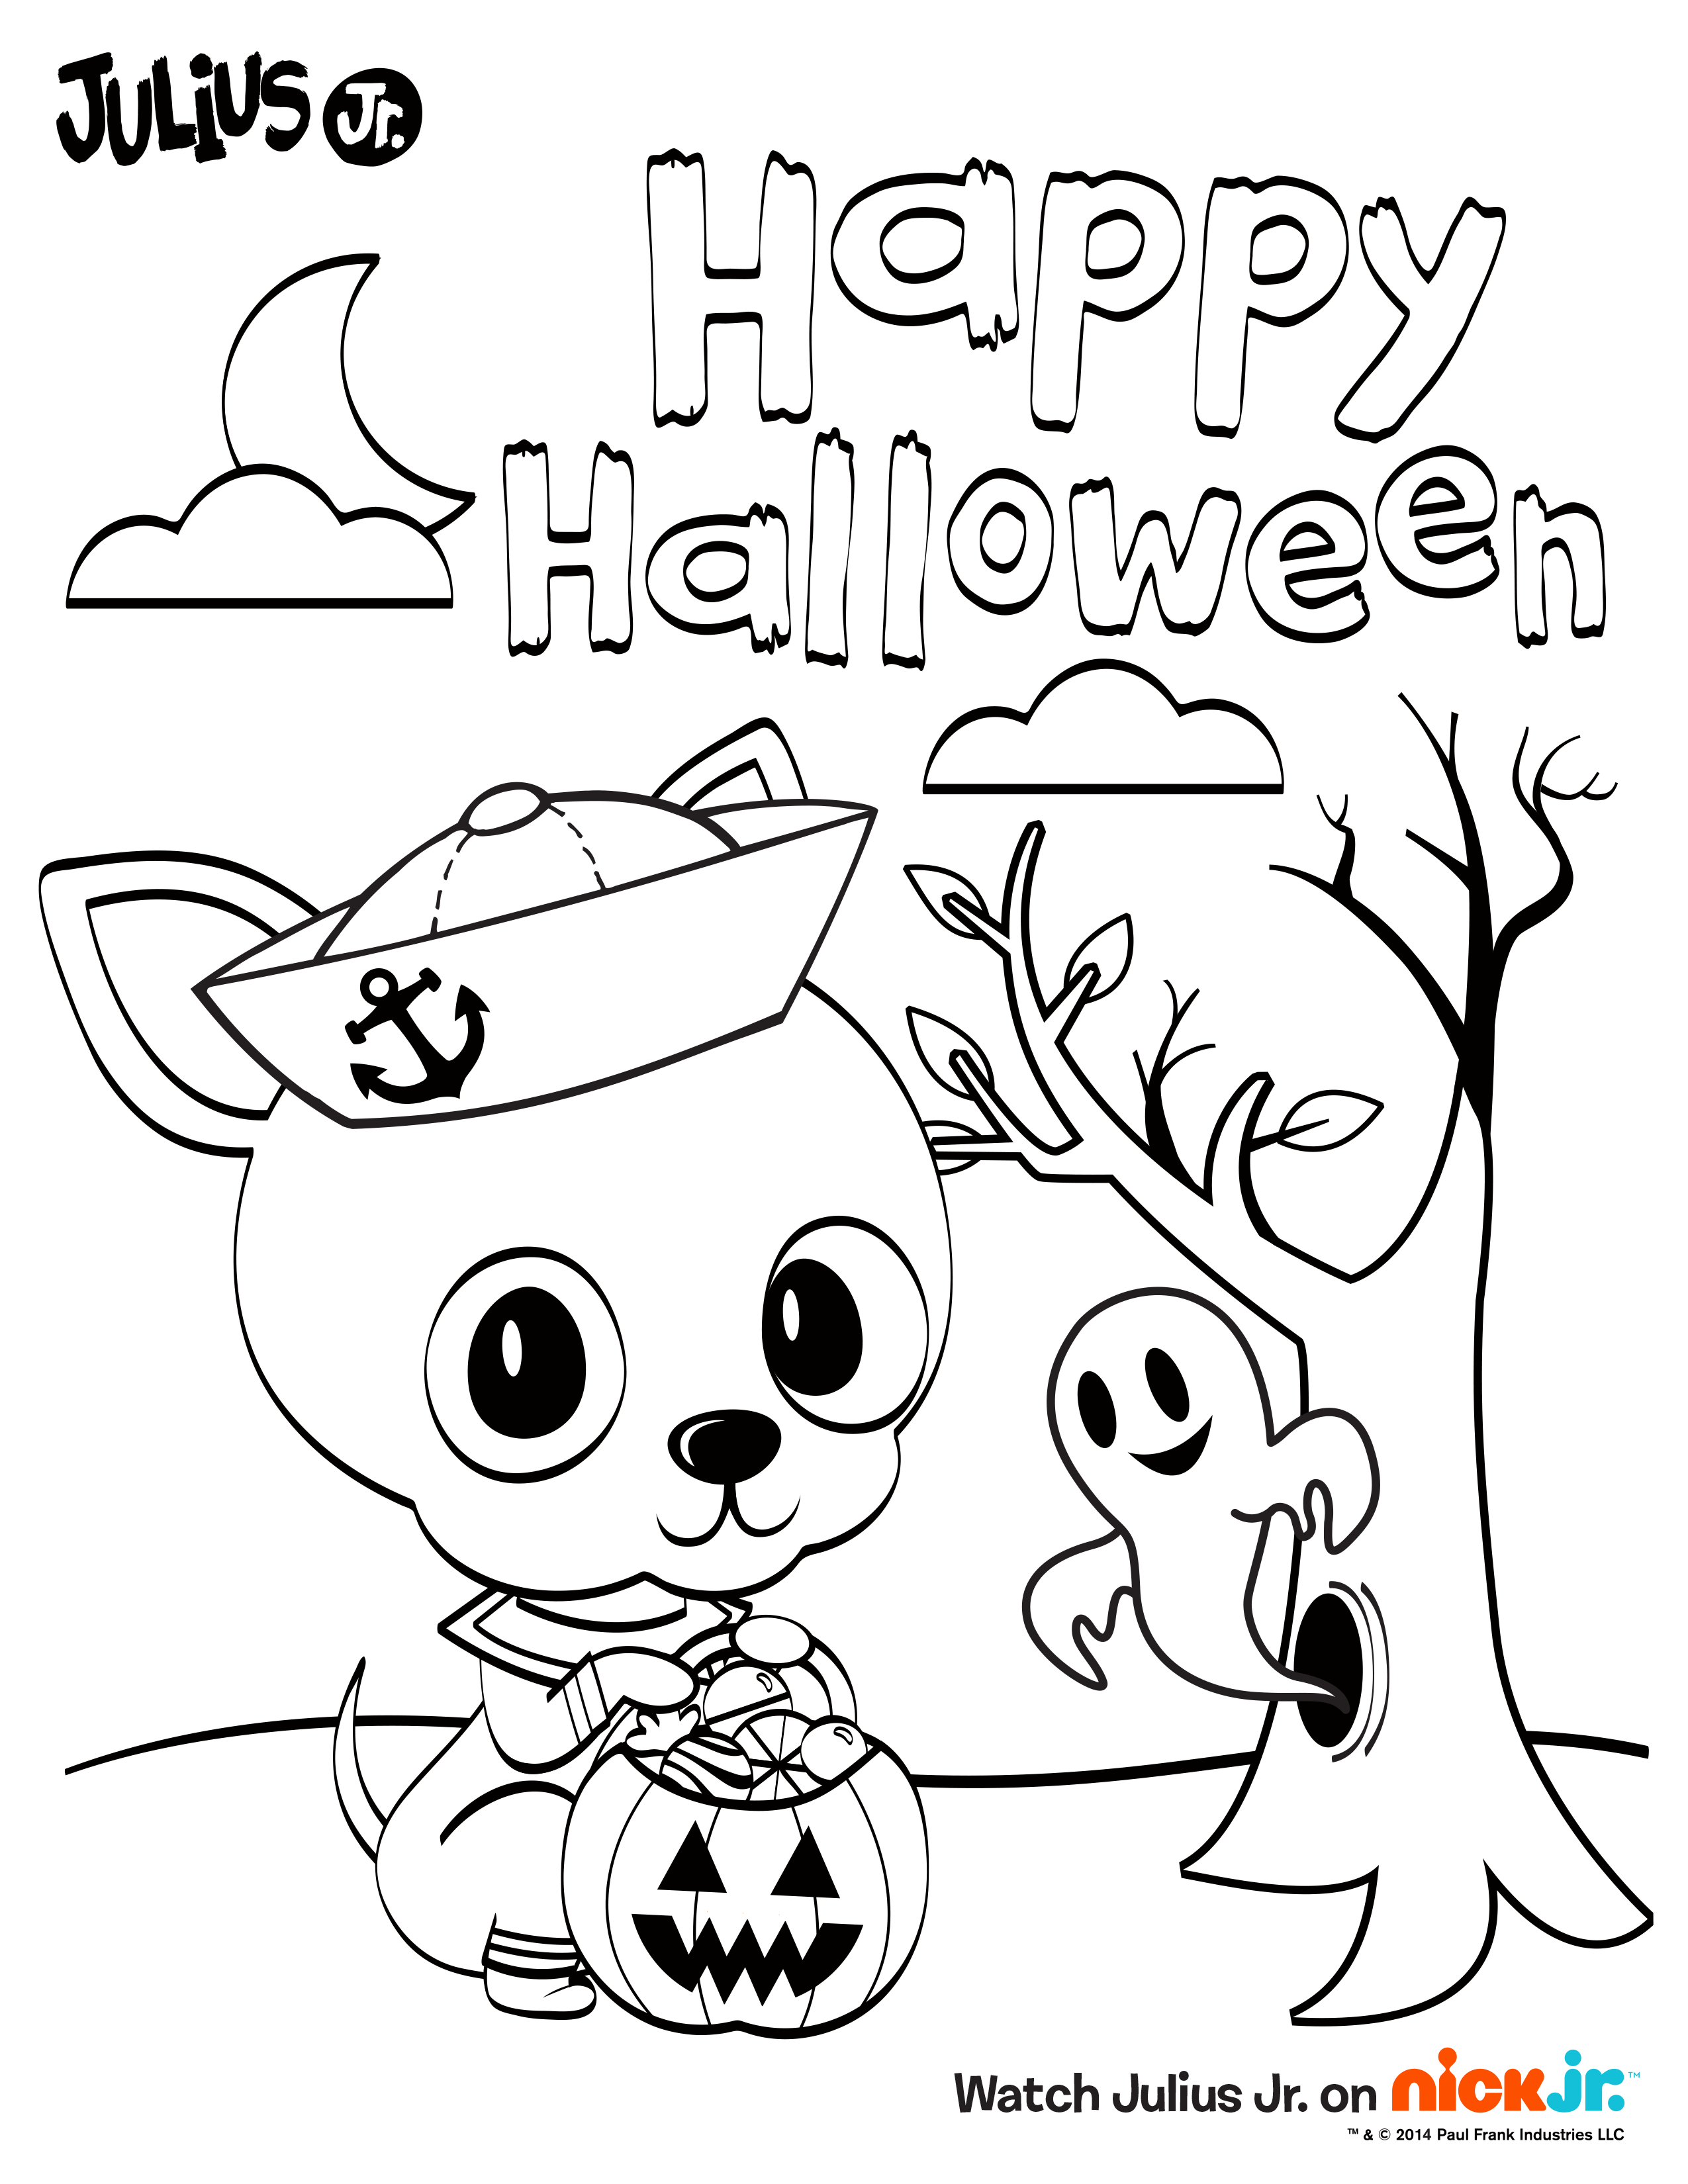 Happy Halloween From Chachi Enjoy This Fun Printable Coloring Sheet Happy Halloween Cards Halloween Coloring Book Happy Halloween